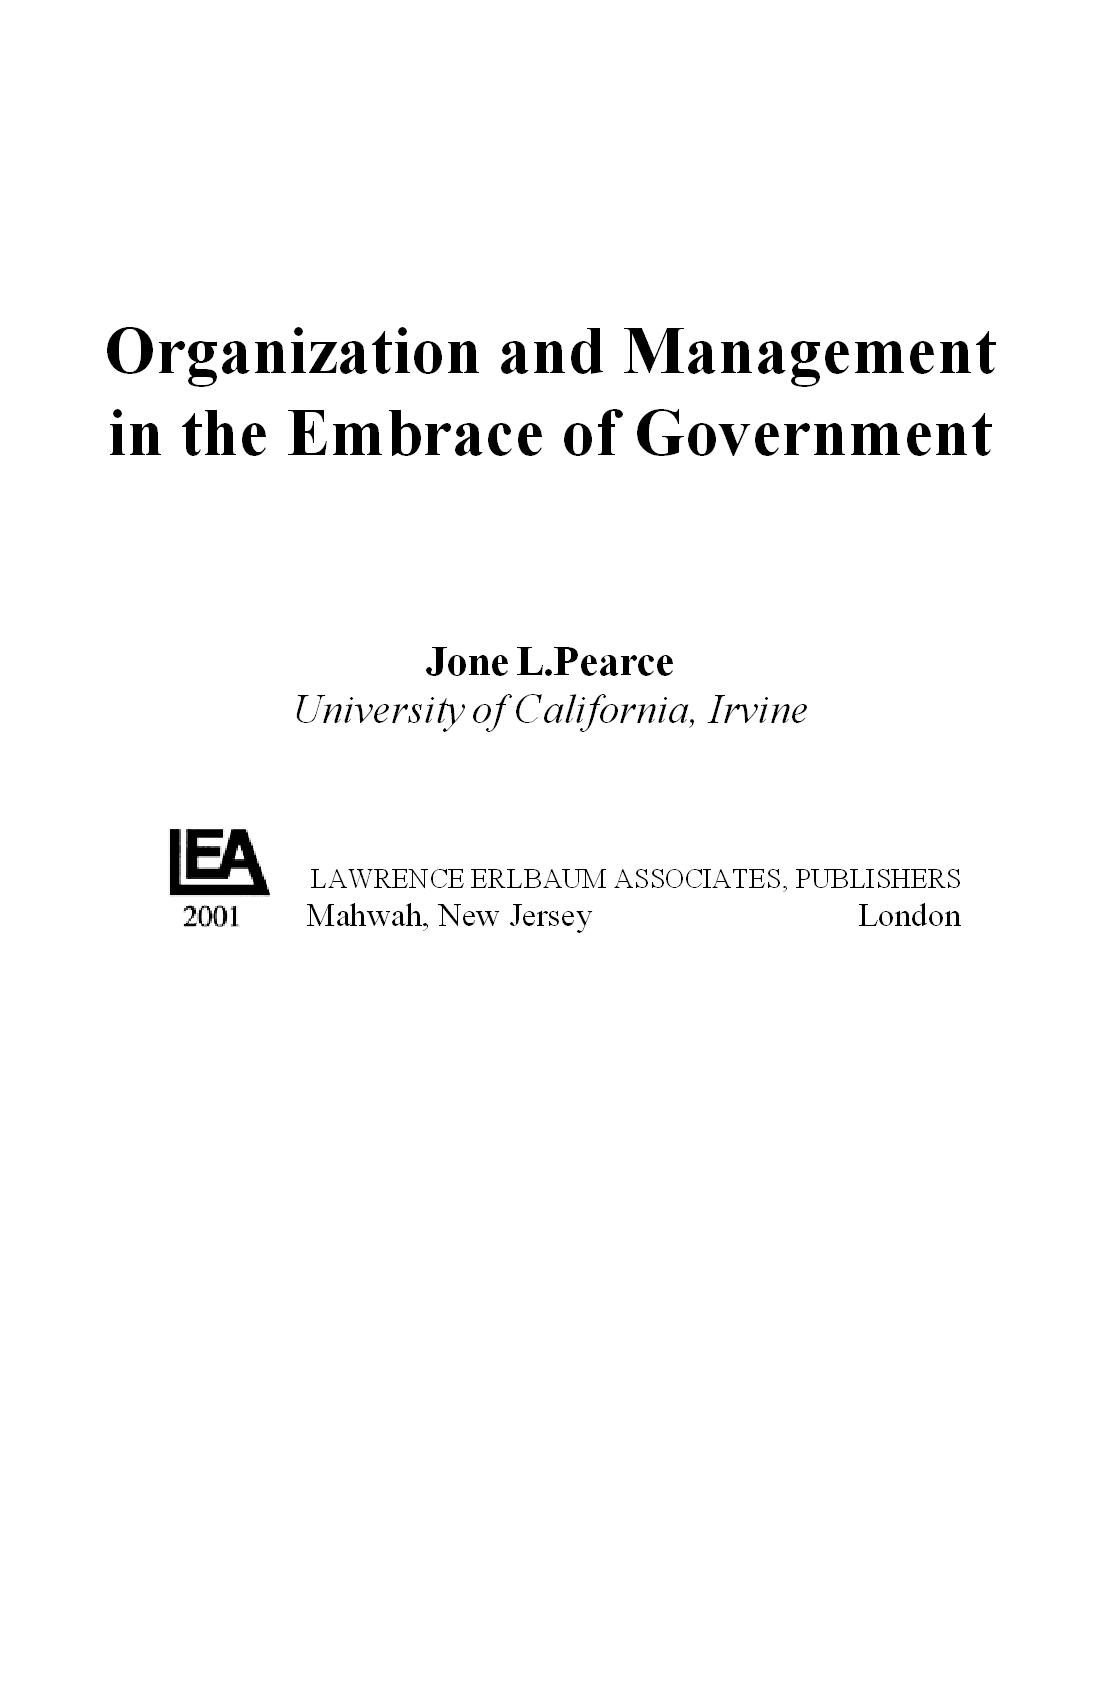 Organization and Management in the Embrace of Government  53